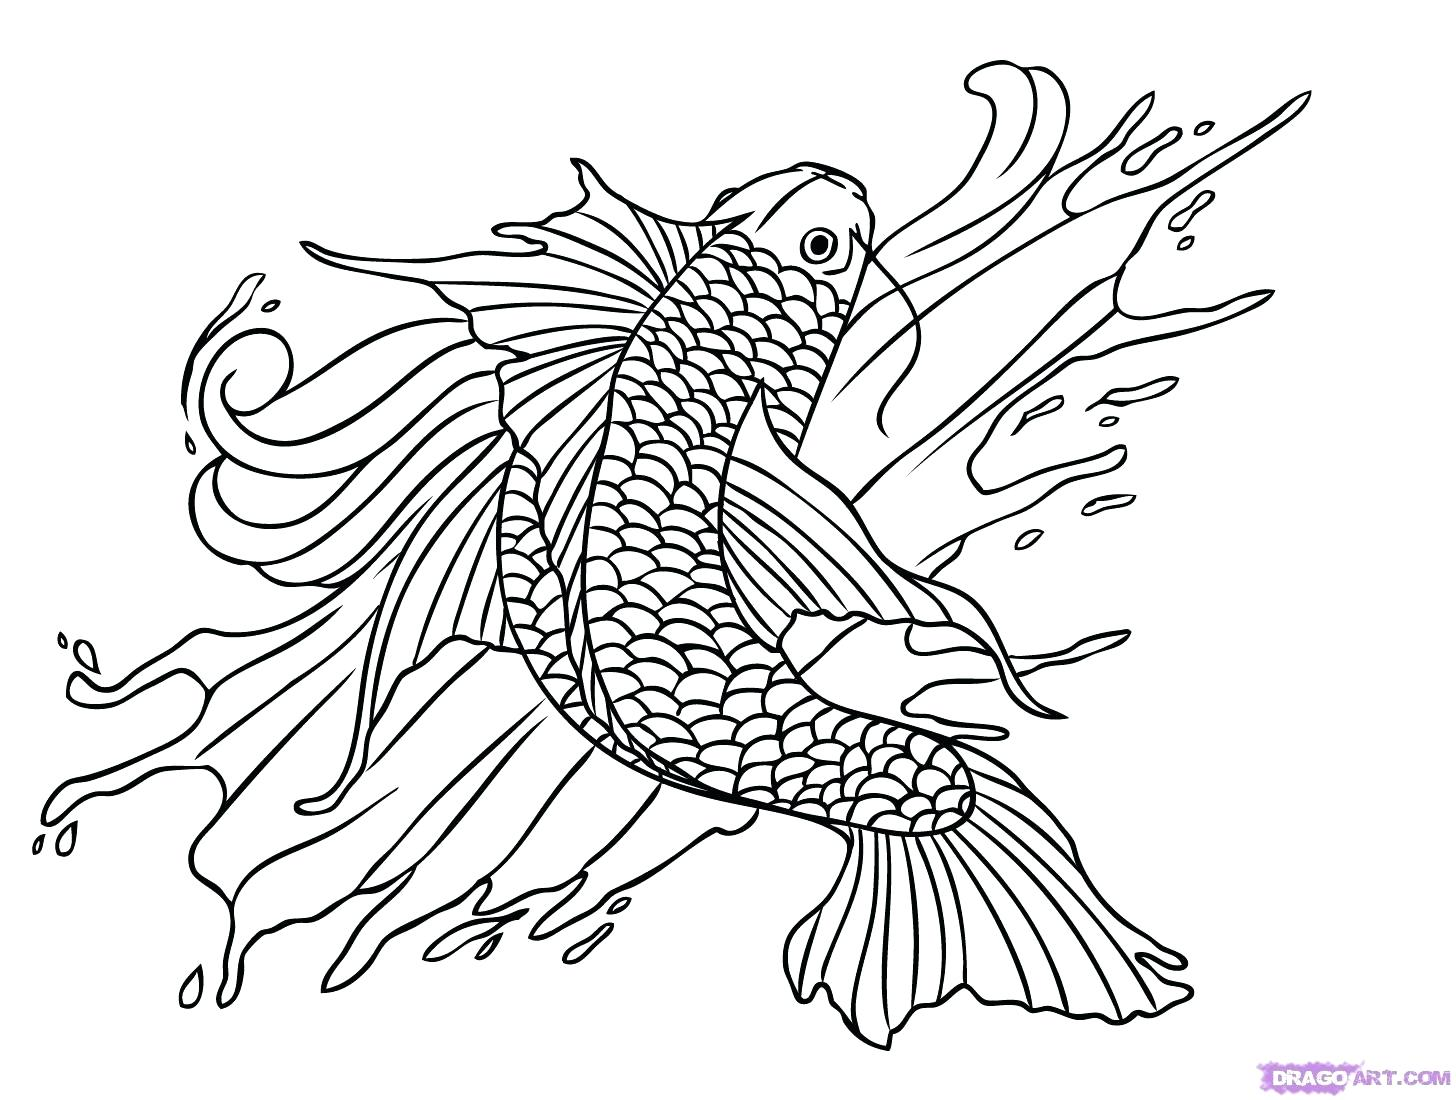 1456x1100 Coloring Pages Christmas For Adults Japanese Koi Fish Detailed